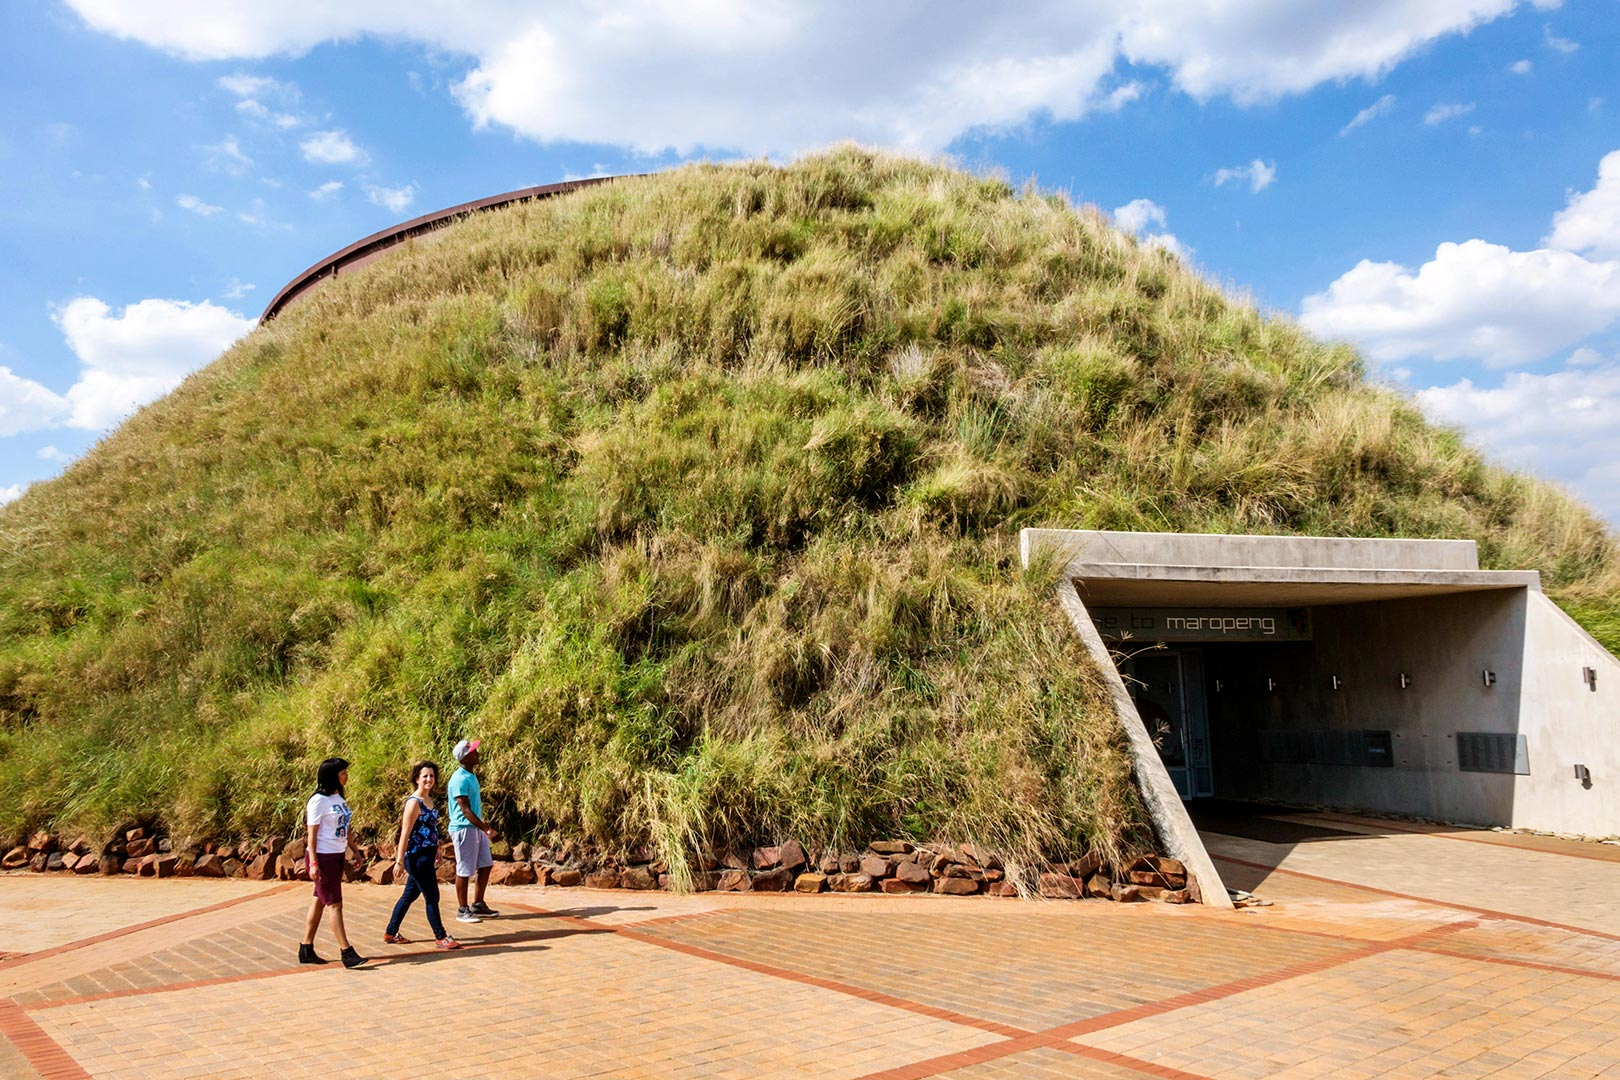 Picture of people at the Cradle of Humankind Visitor Center, Africa